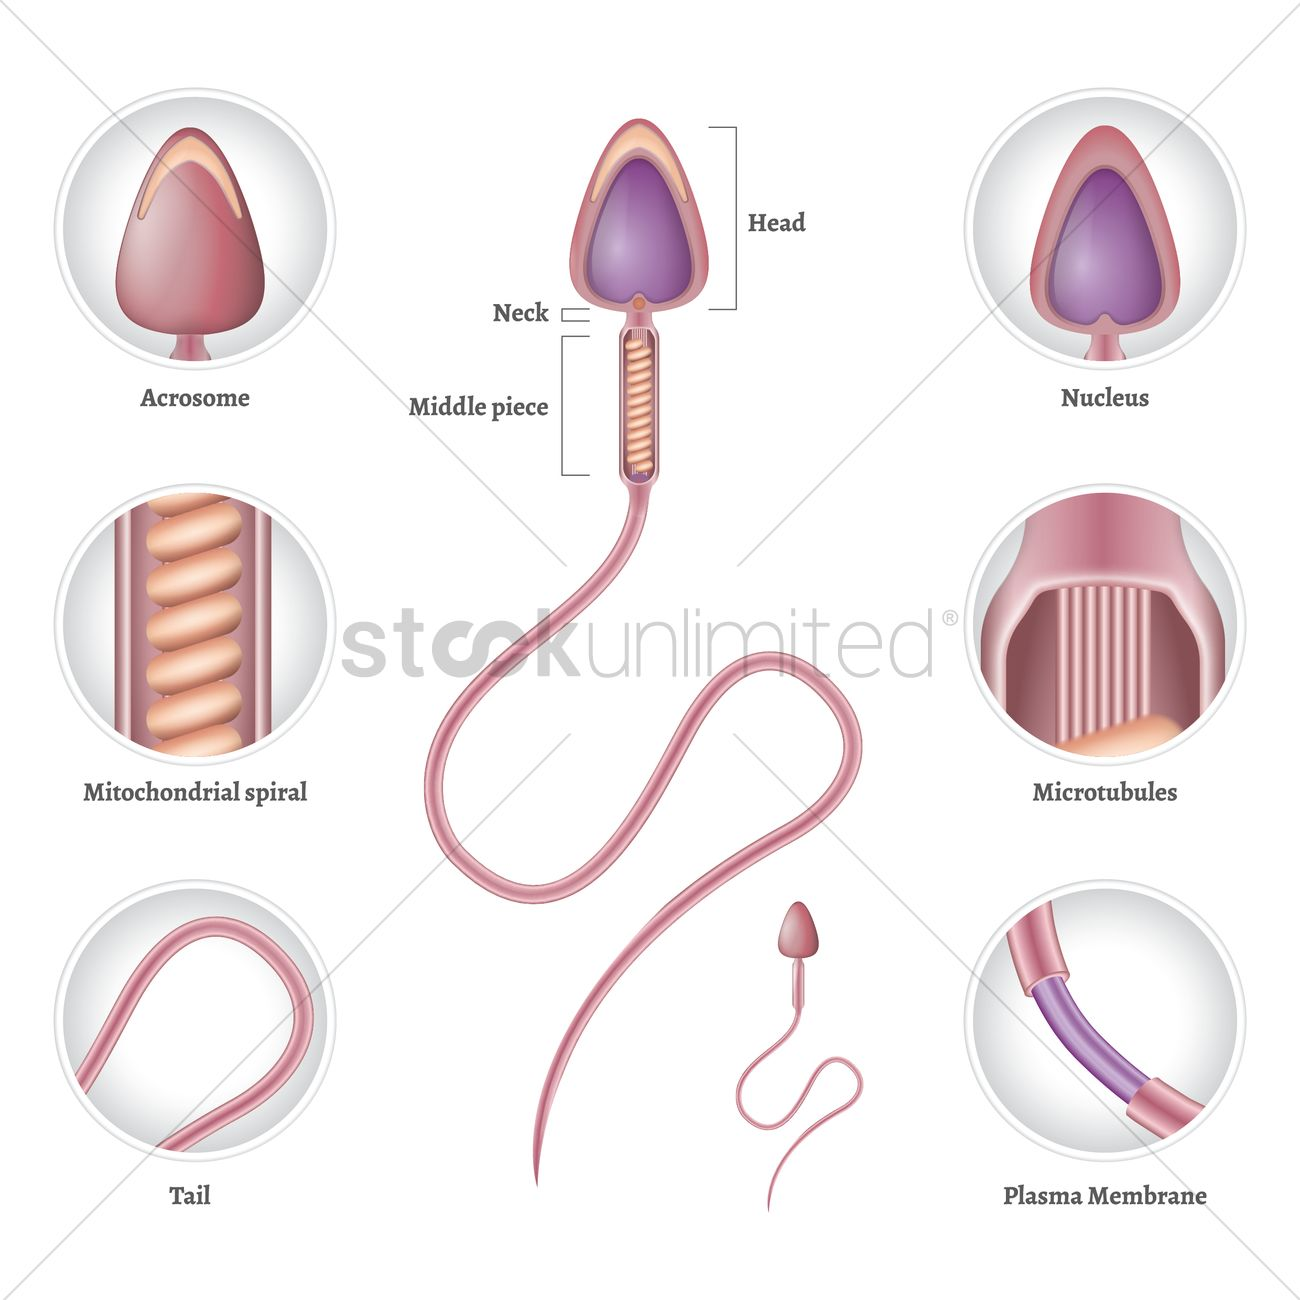 Anatomy of sperm Vector Image - 1825190 | StockUnlimited